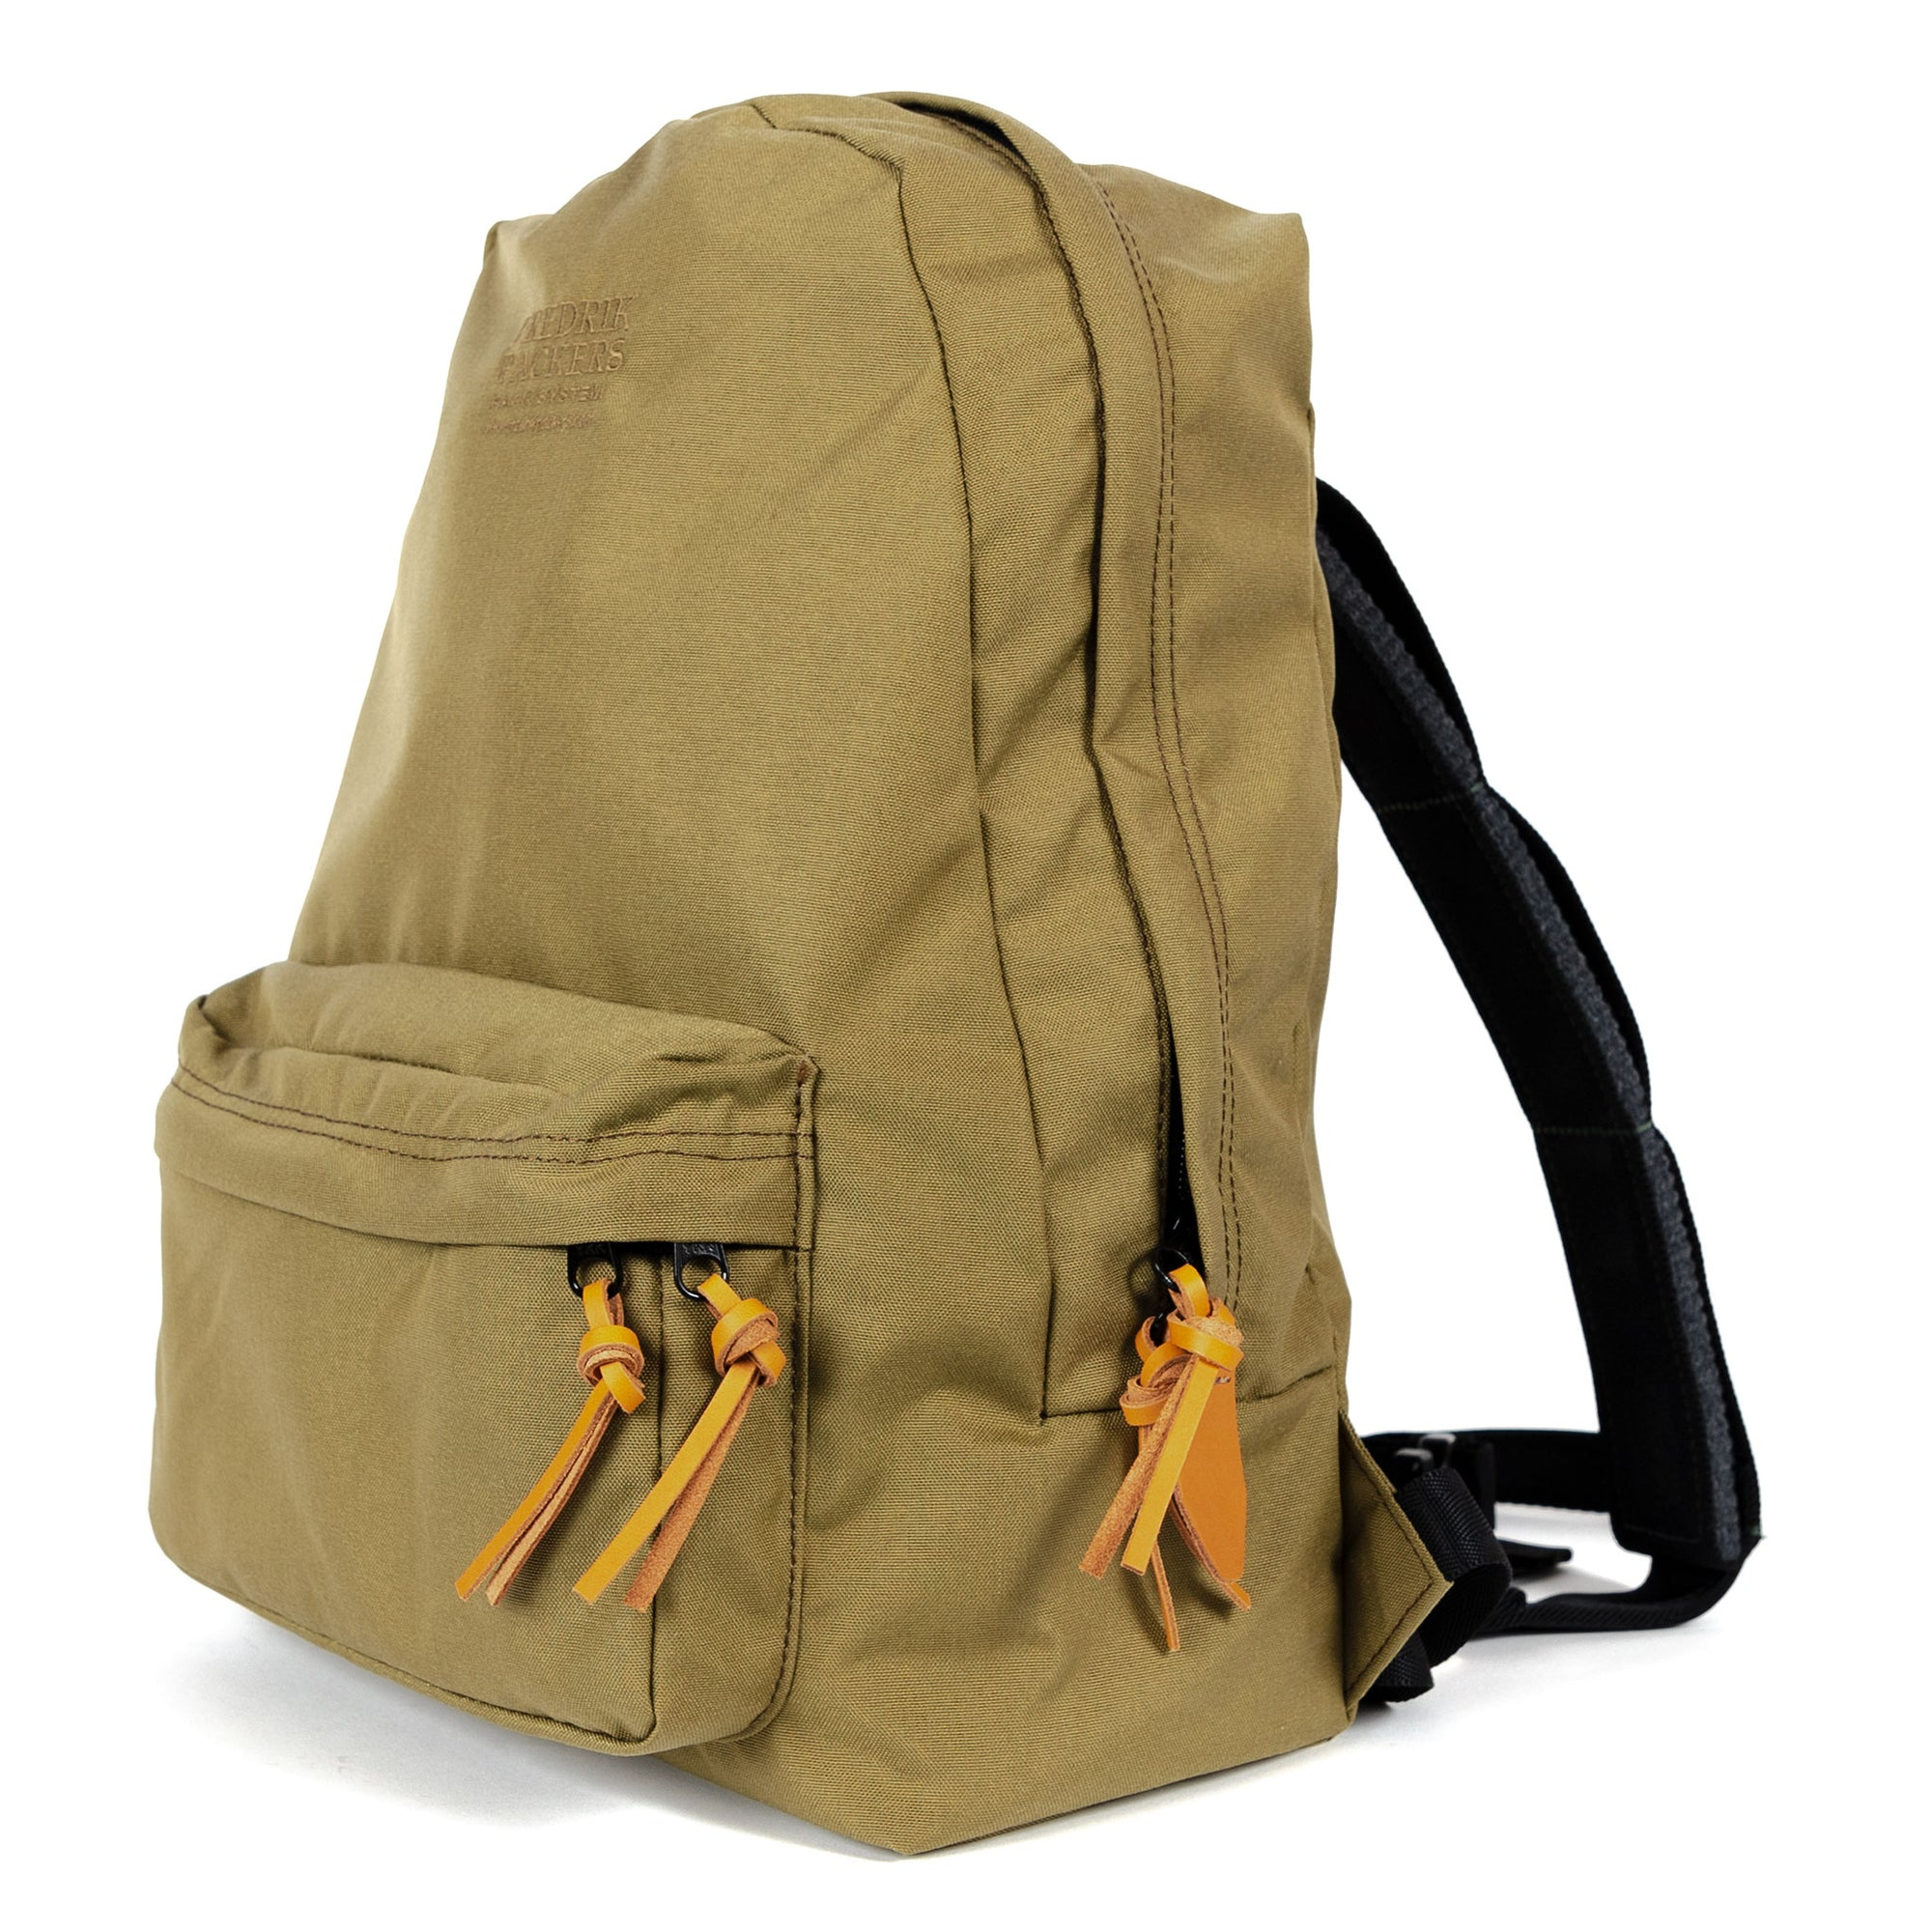 fredrik-packers-500d-day-pack-beige